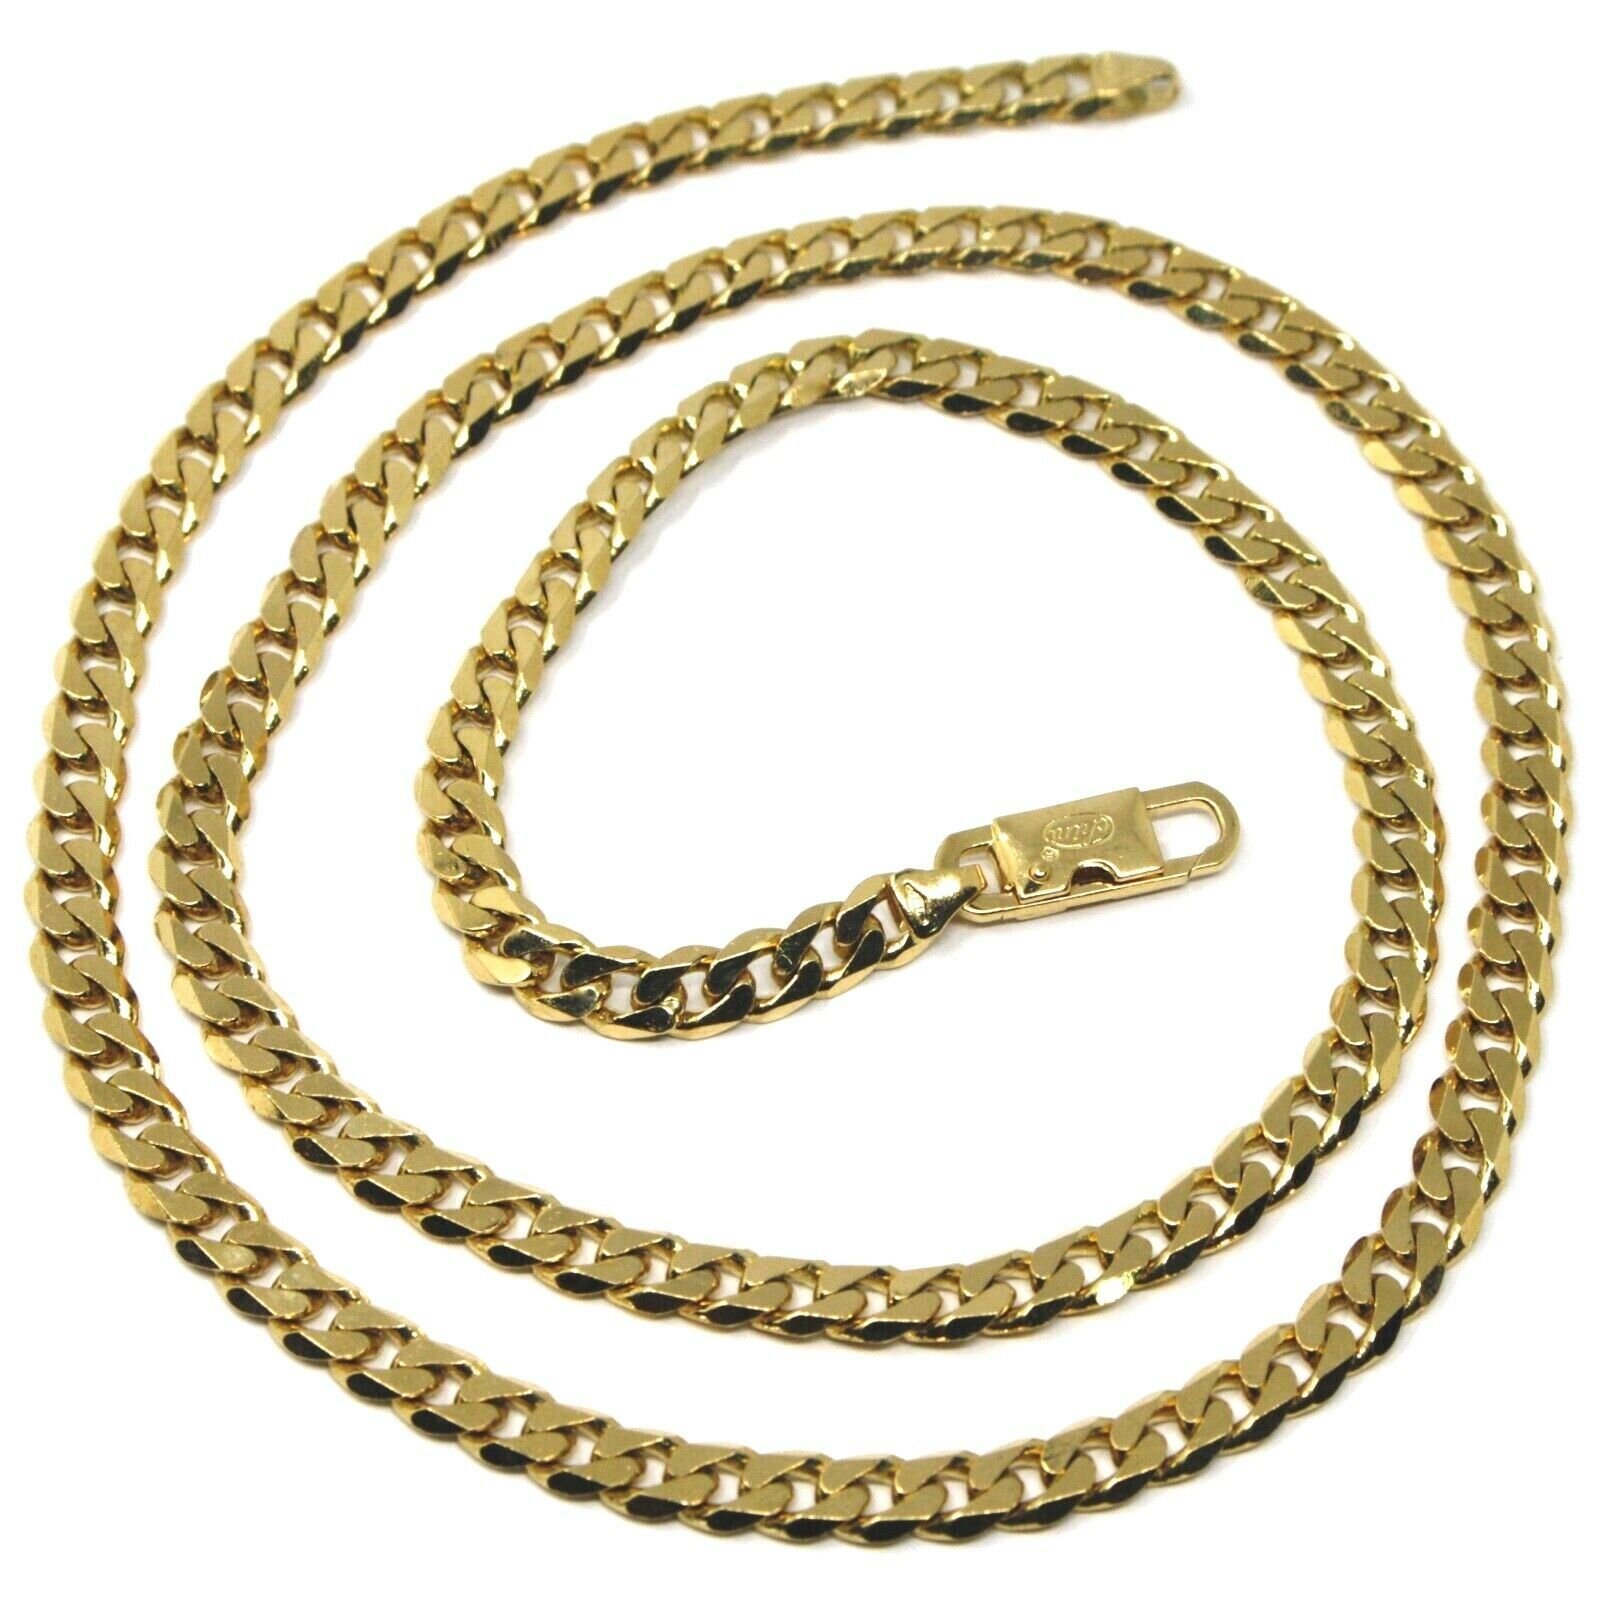 "MASSIVE 18K GOLD GOURMETTE CUBAN CURB FLAT CHAIN 5.5 MM 20"" NECKLACE ITALY MADE"